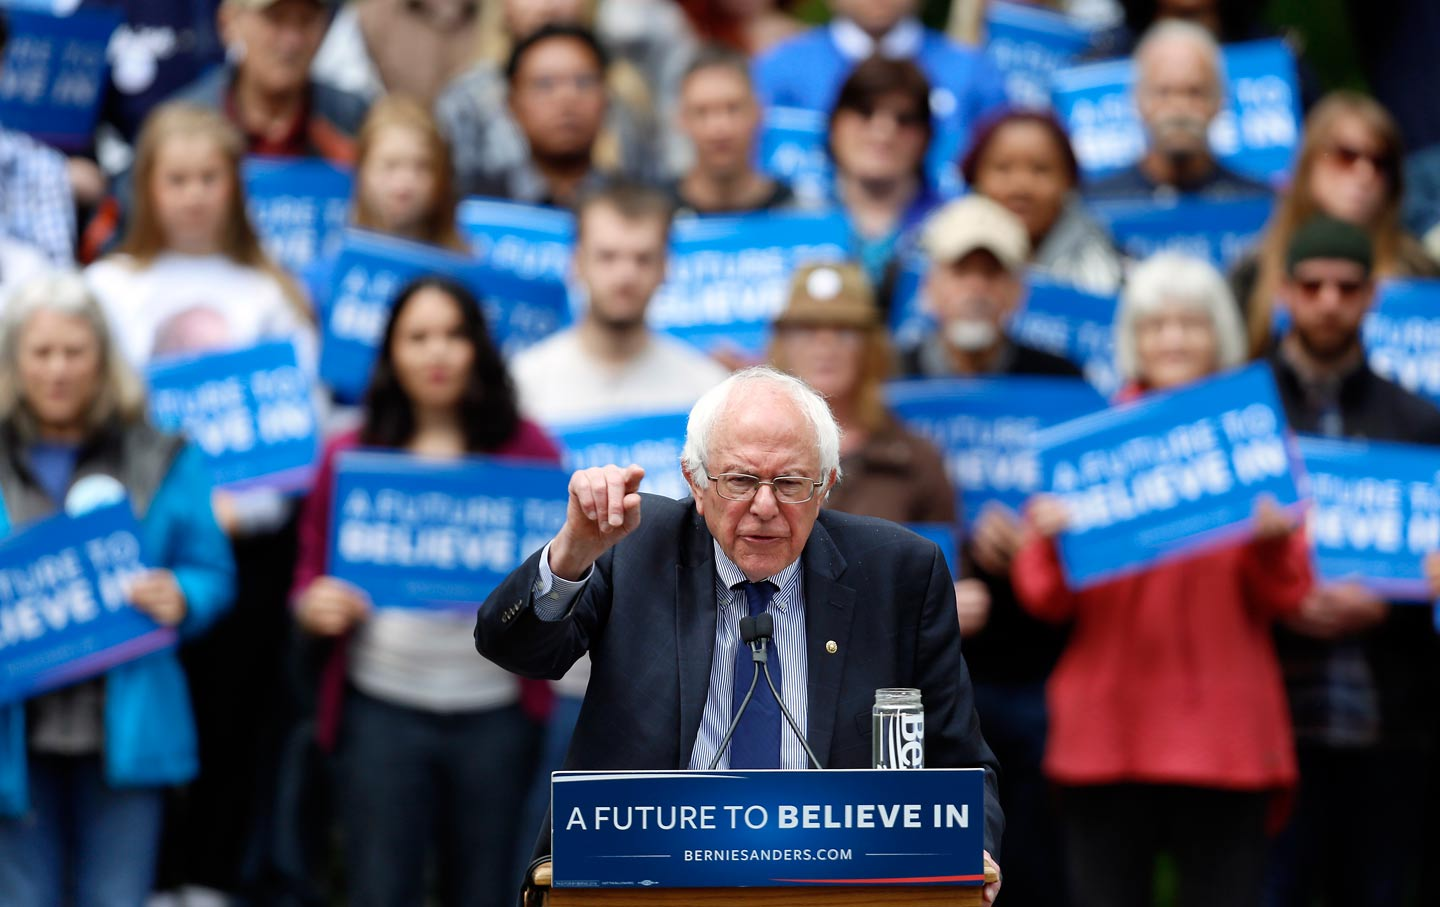 Sanders pushes for debate with Trump; Trump declines a day after accepting